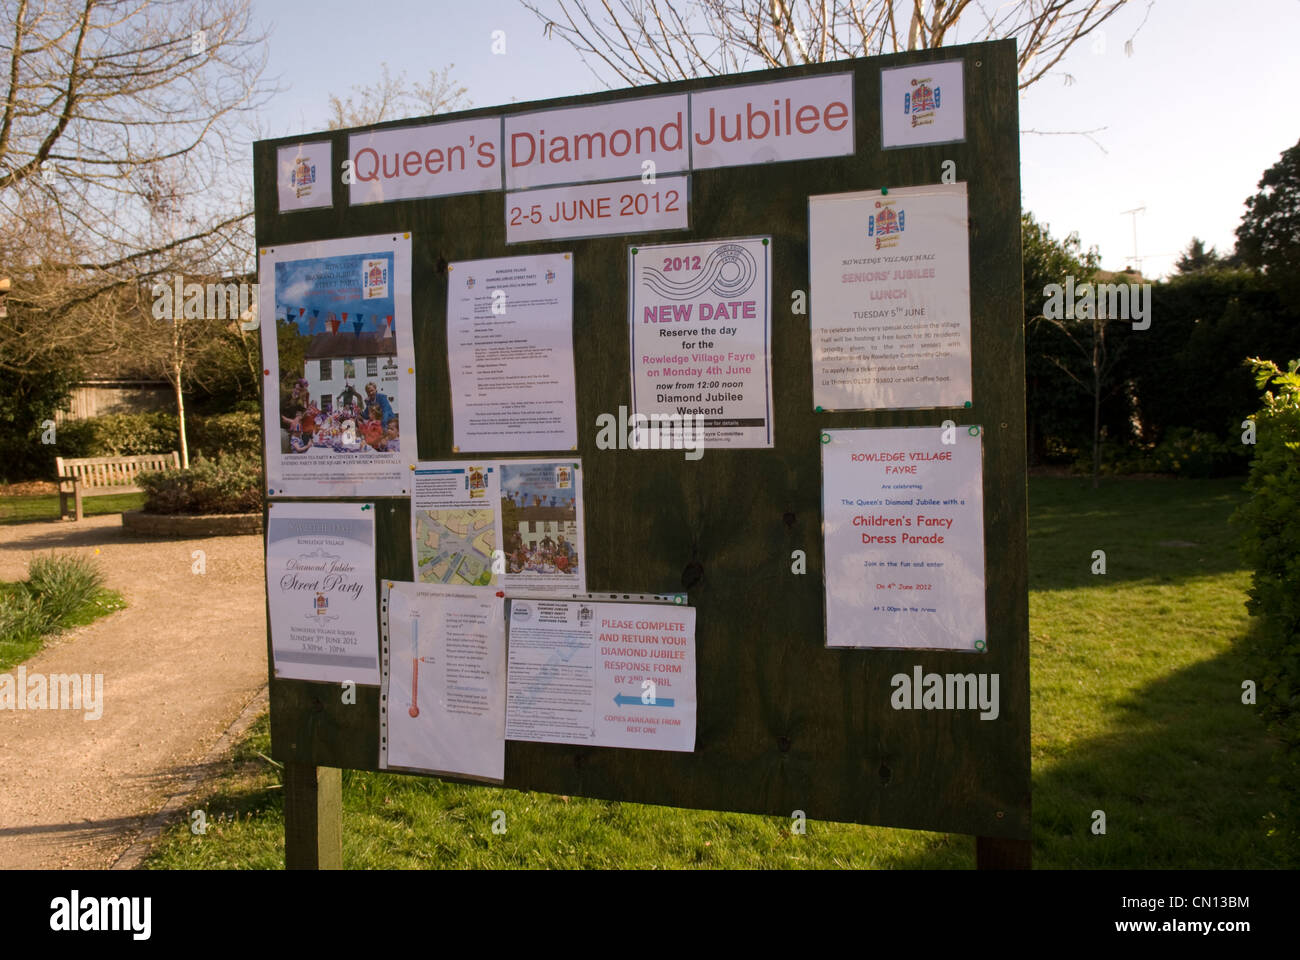 Noticeboard in village of Rowledge showing details of local celebrations for Queen's Diamond Jubilee in June - Stock Image